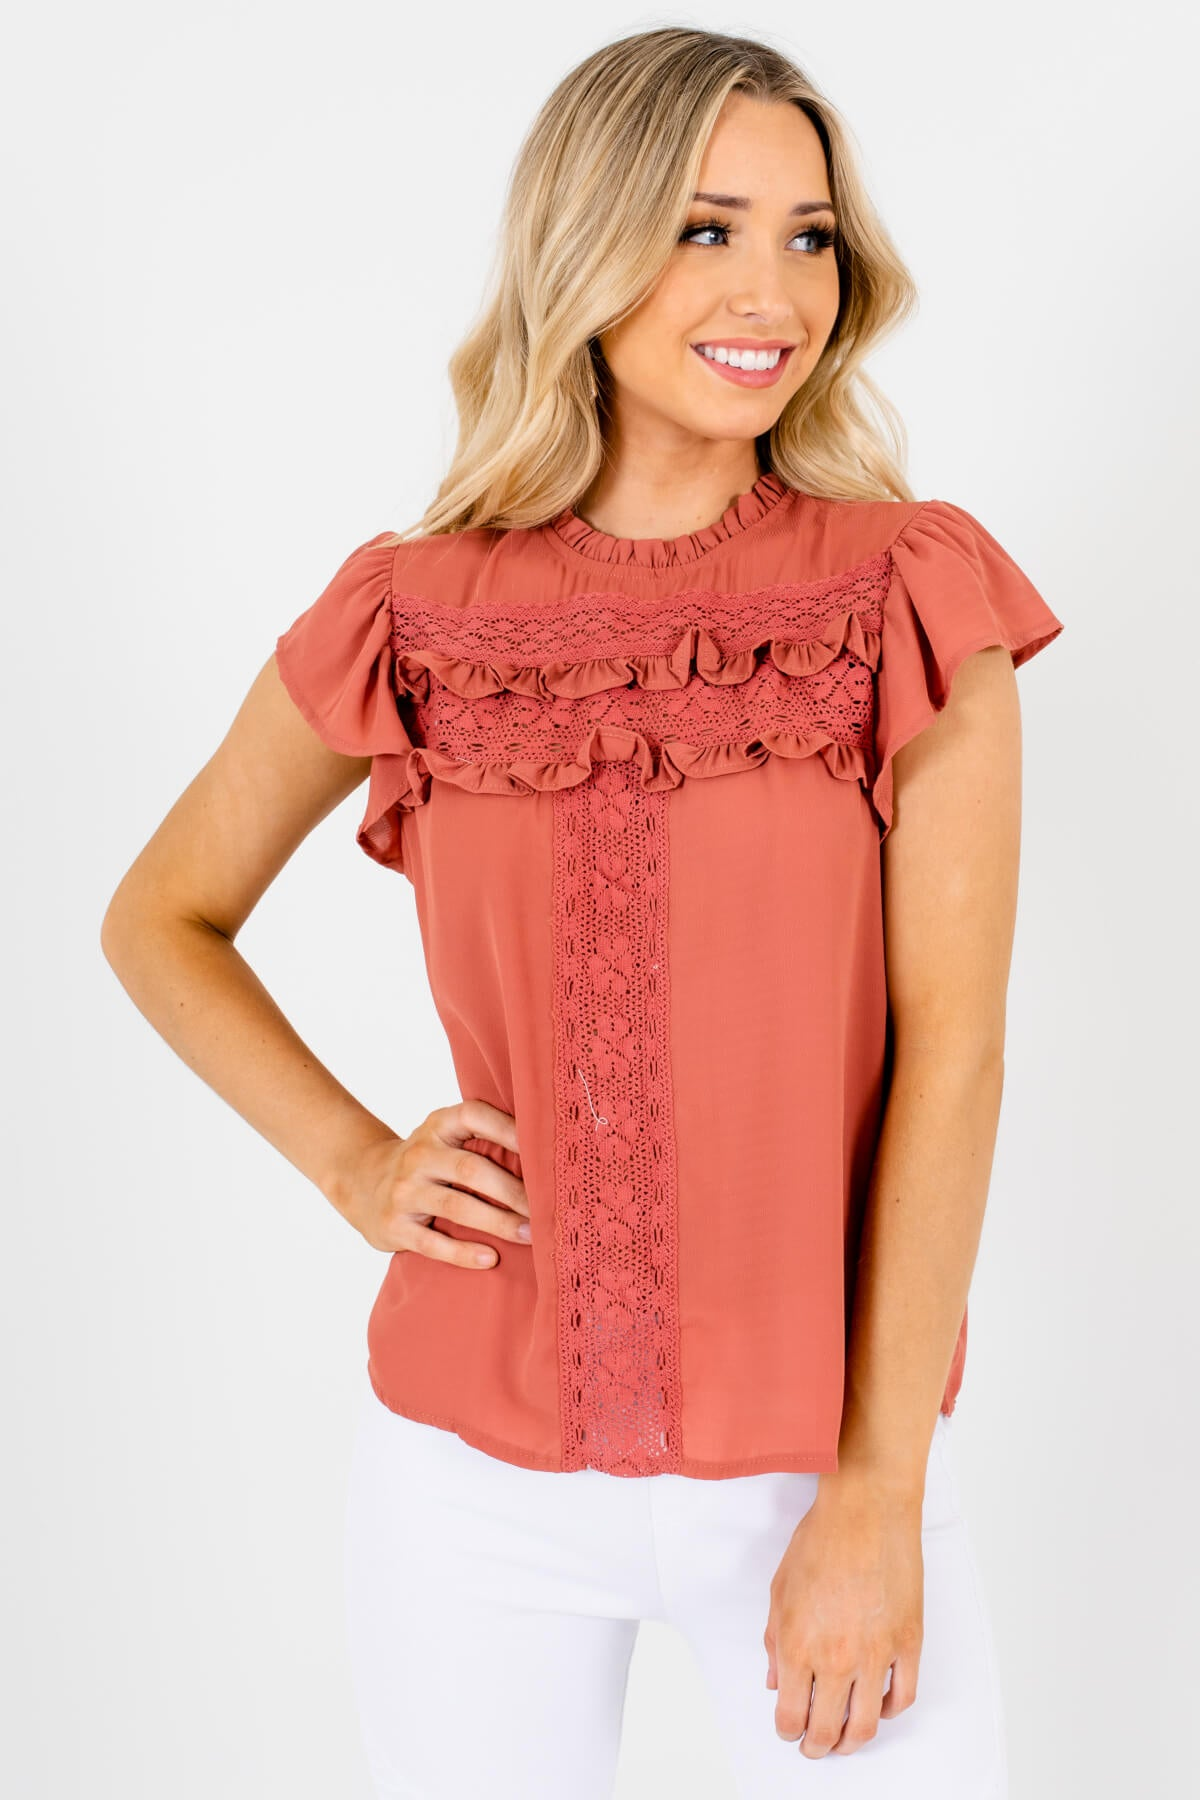 Dark Pink Ruffle Accented Boutique Blouses for Women